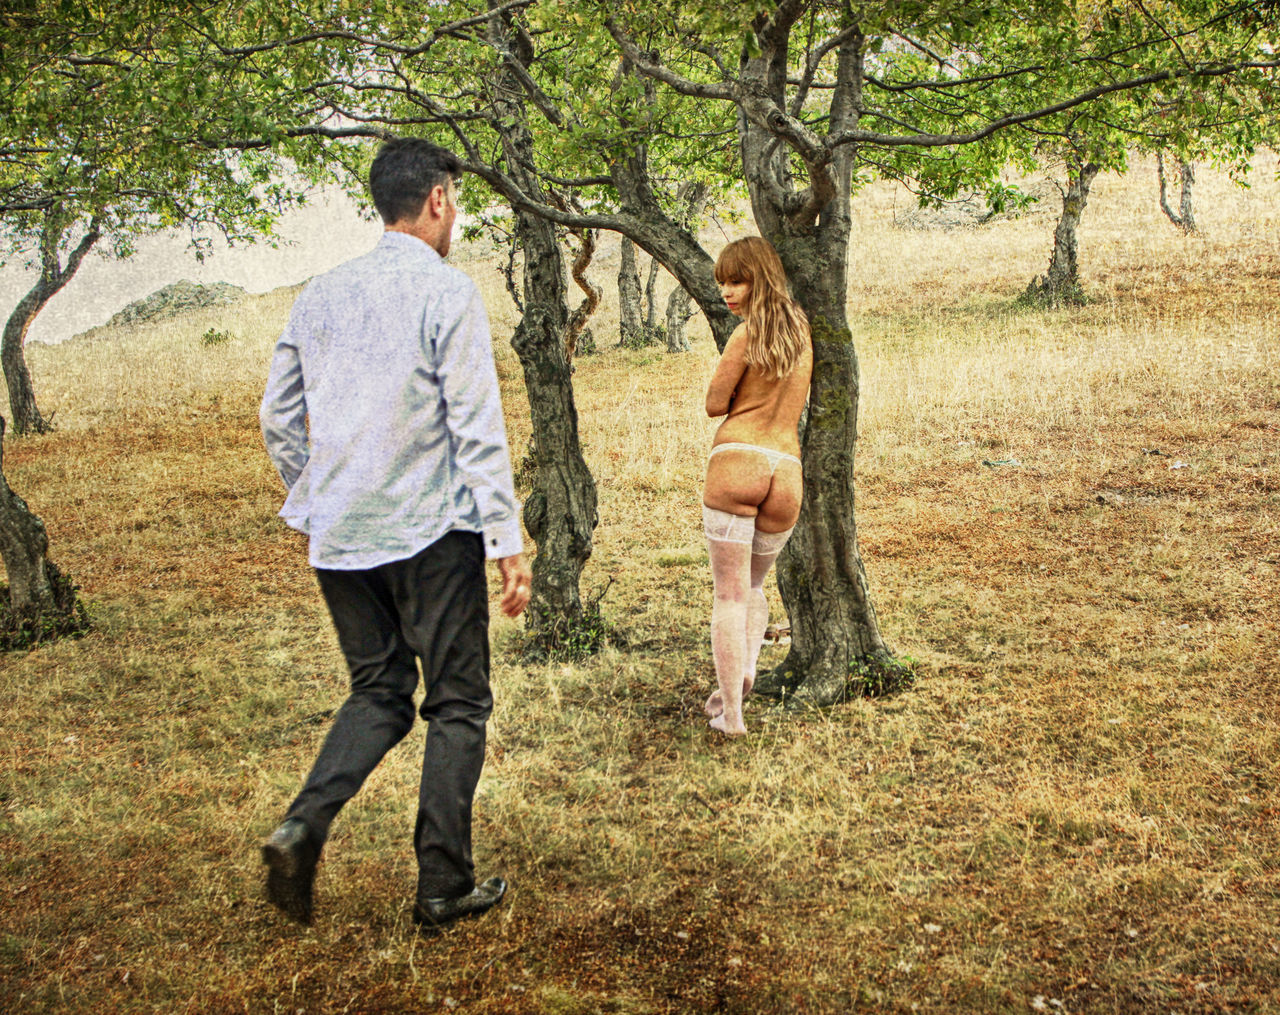 The Satyr and the Bacchante Bacchante Chaseyourdreams Couple Emotions Emotions Captured Feeling Focus On Foreground Illustration Legend Lifestyles Love Modern Mythology Mythology Outdoor Photography Outdoors People Satyr Satyricon Scene Togetherness Vision